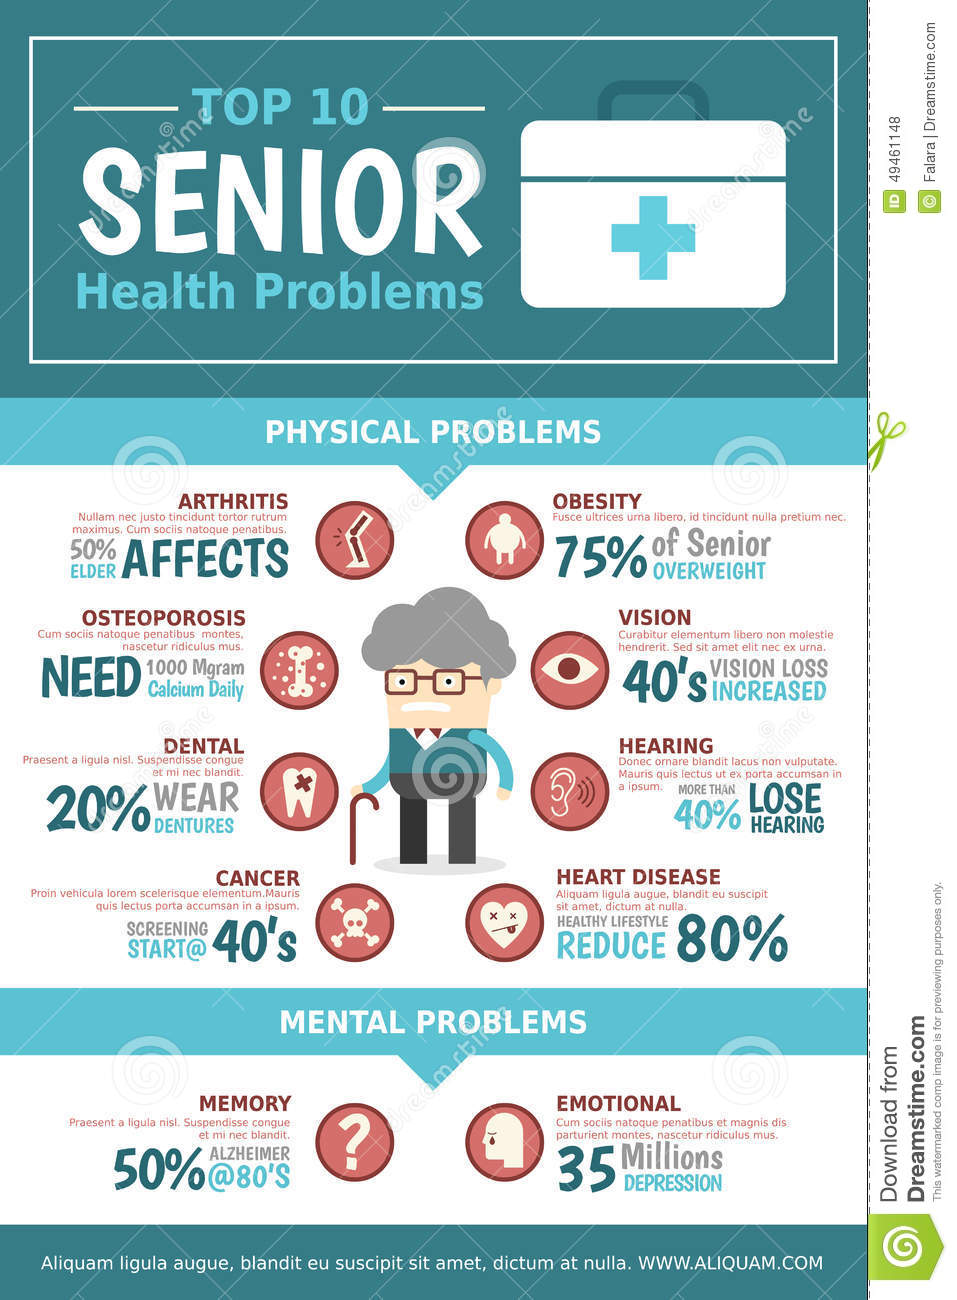 health issues of the elderly 2014 report from the us census bureau paints a detailed picture of those over 65 in the united states, including health care spending, employment and diversity.